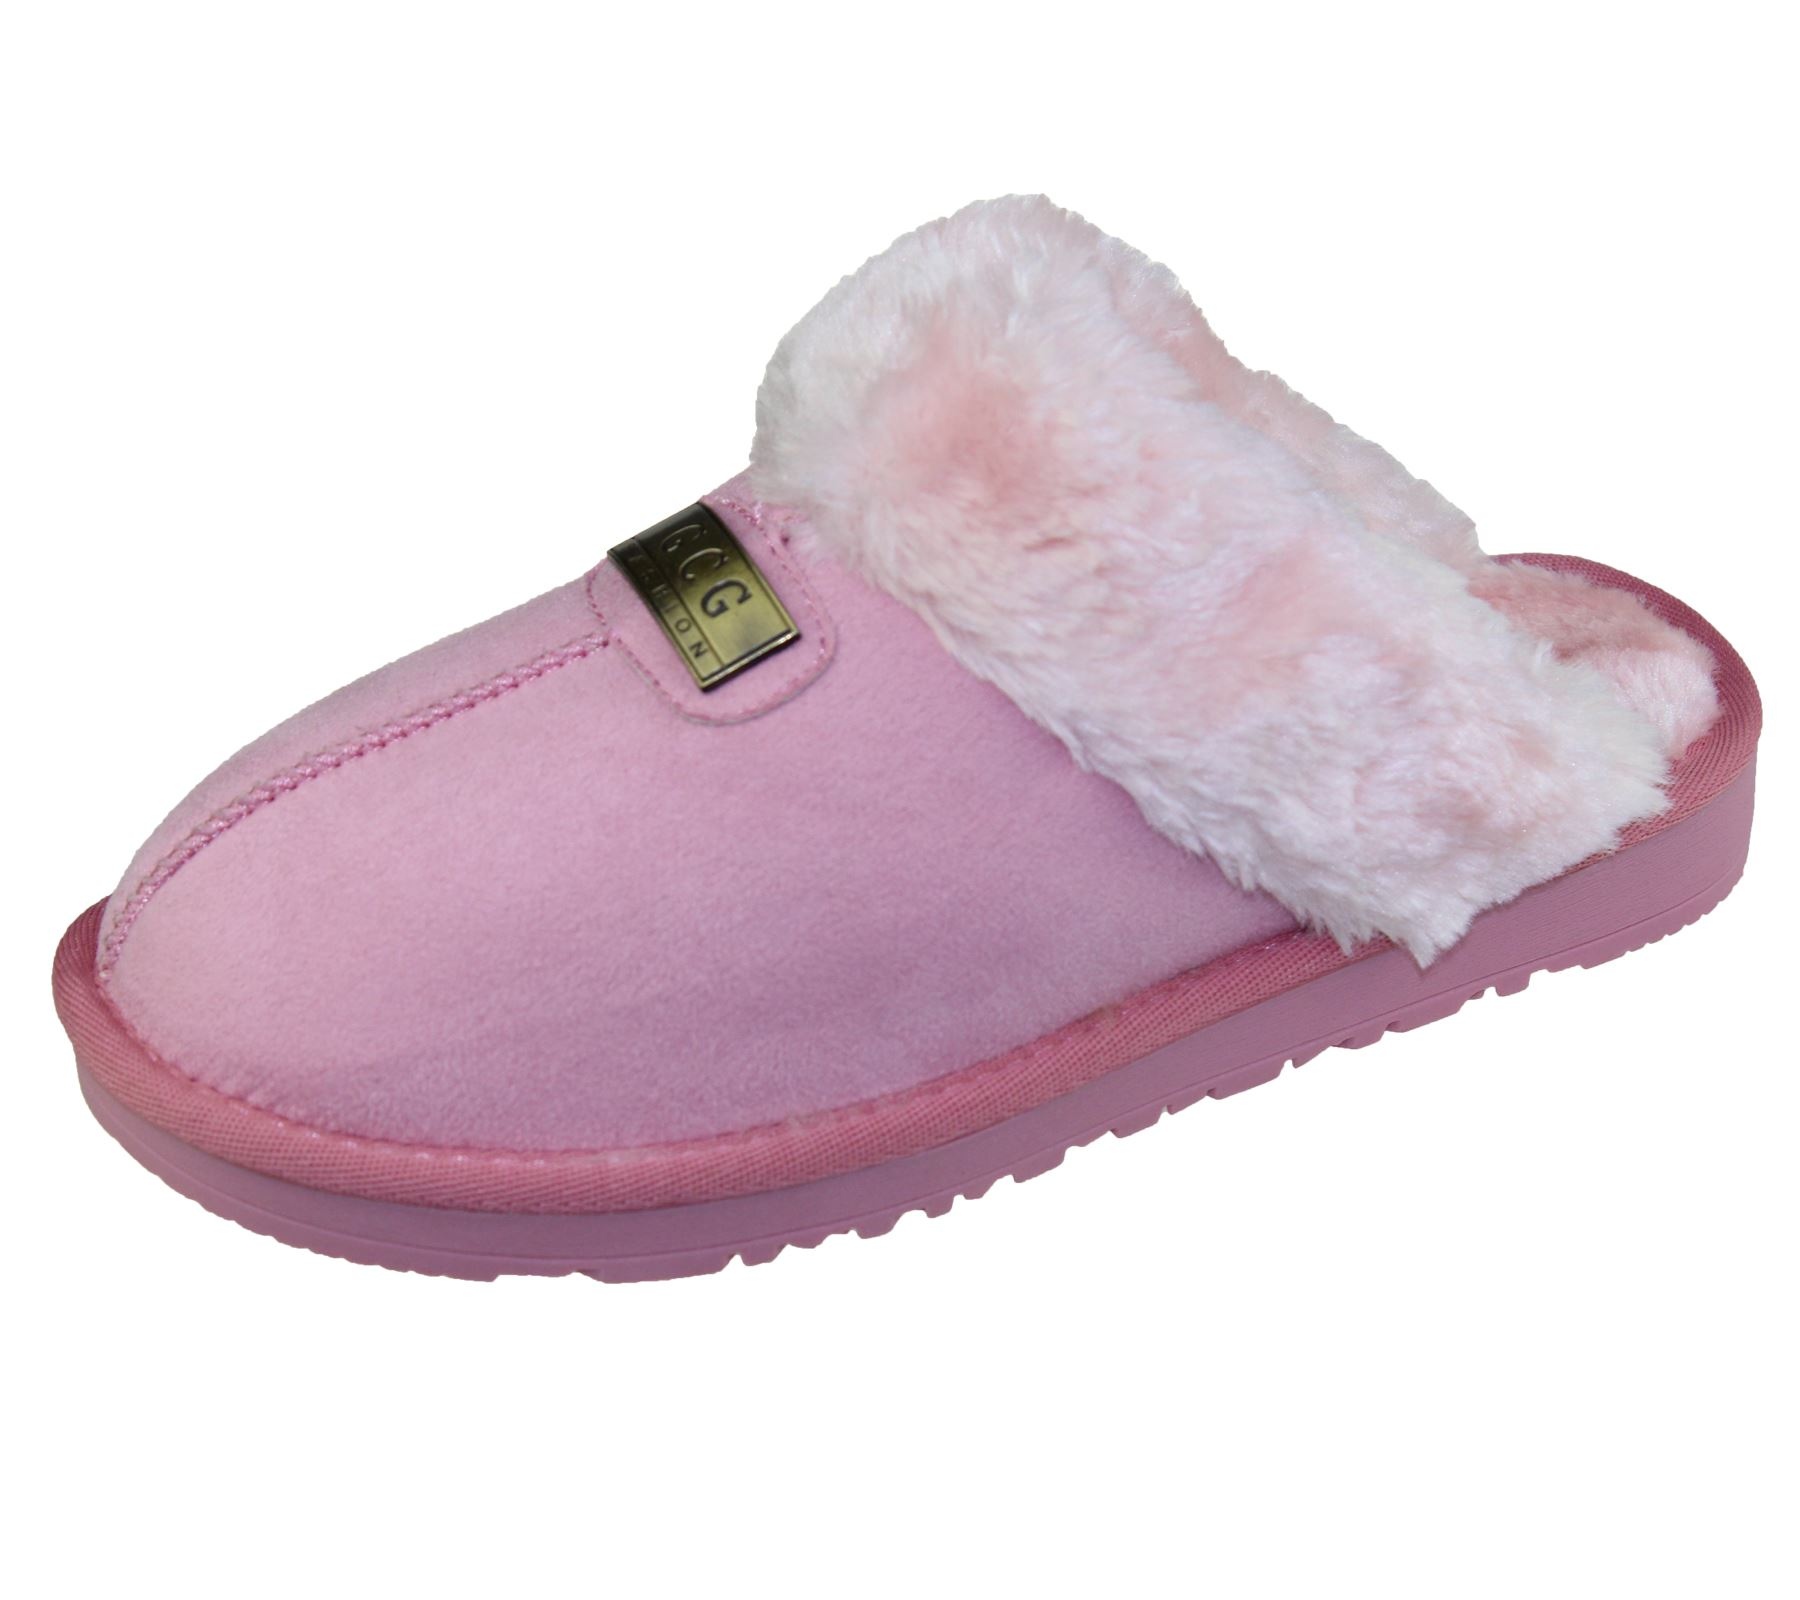 Womens-Fur-Lined-Slippers-Ladies-Mules-Non-Slip-Rubber-Sole-Shoes miniatura 30